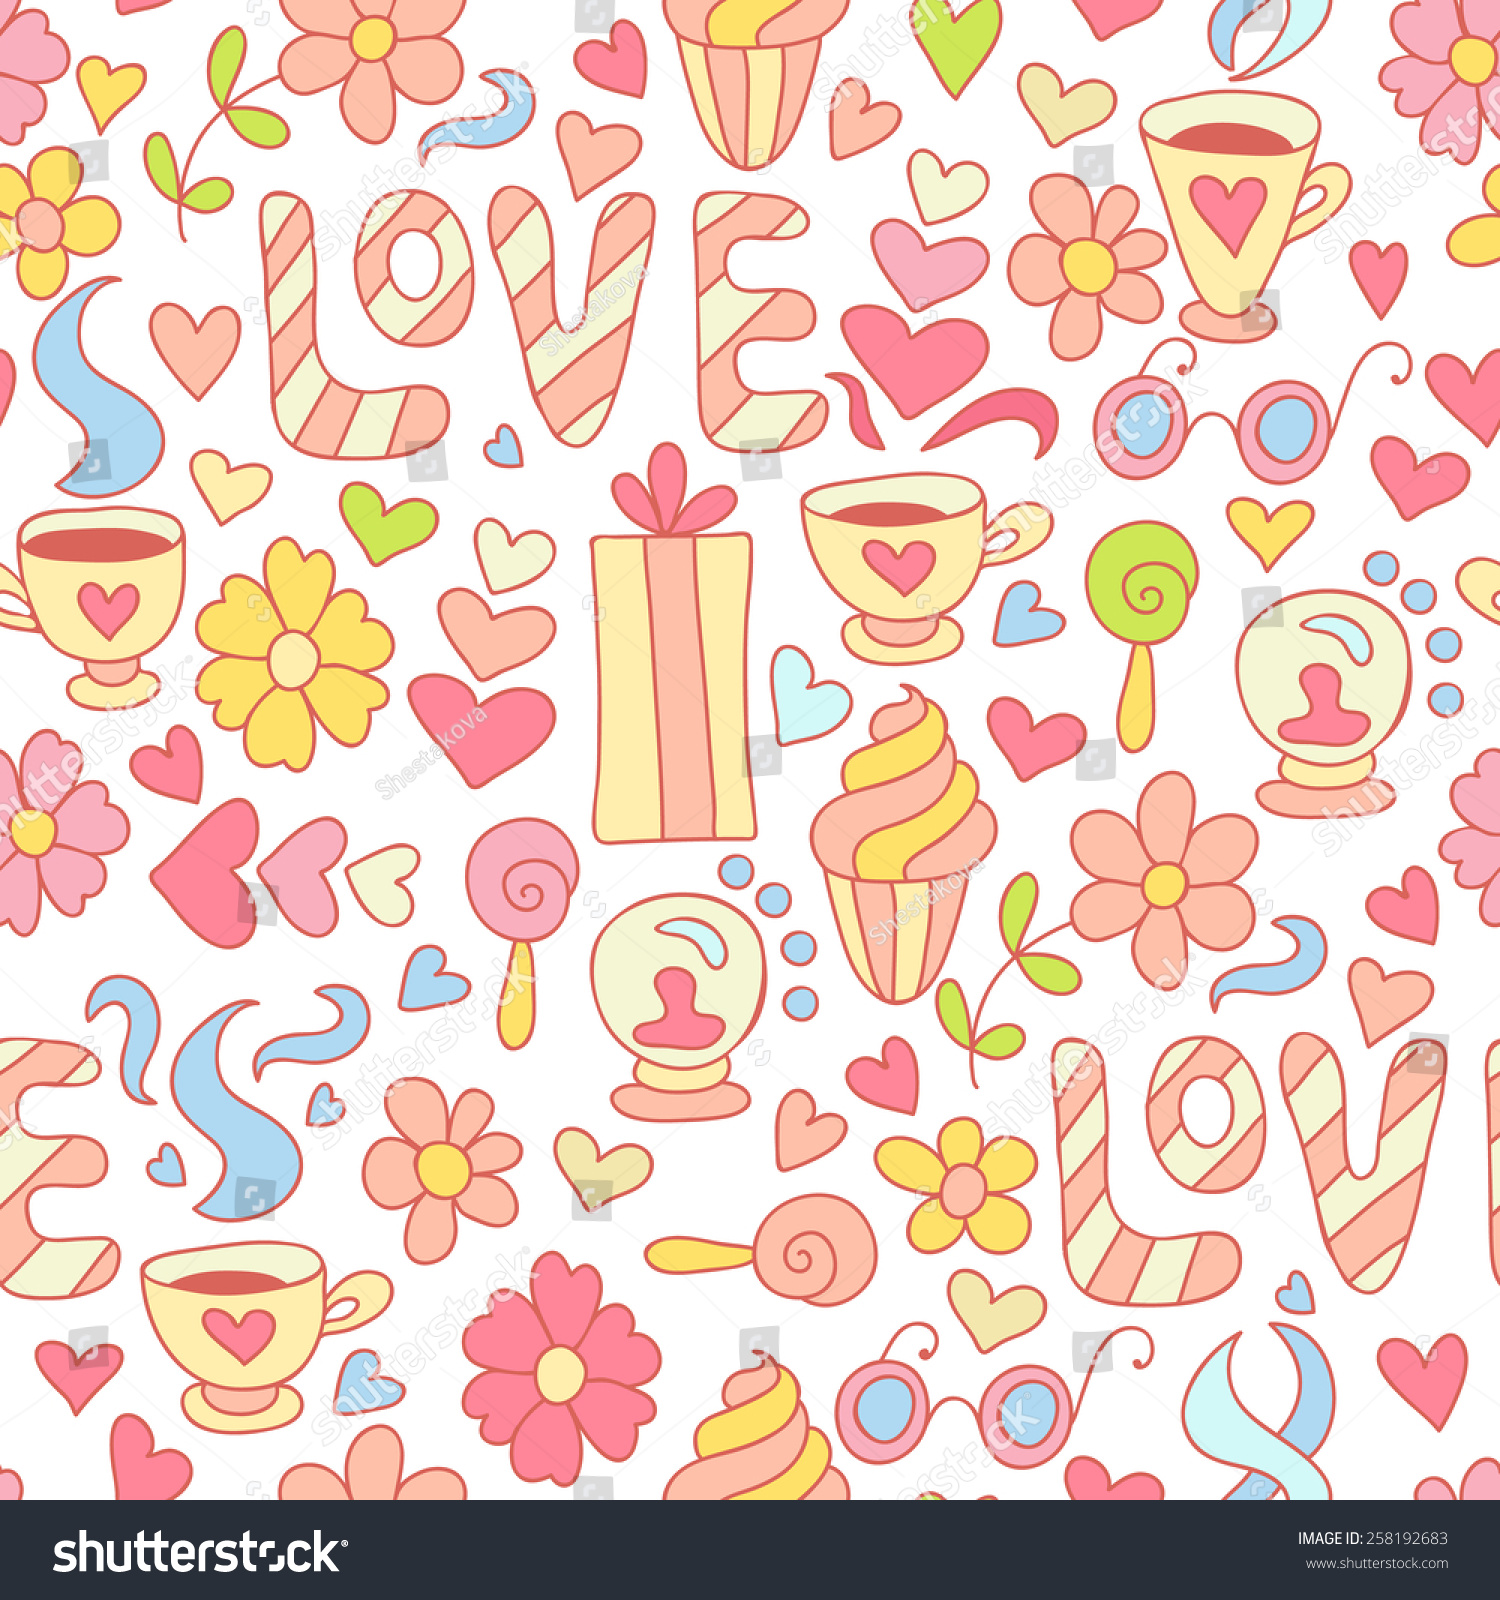 seamless doodle coffee pattern - photo #26